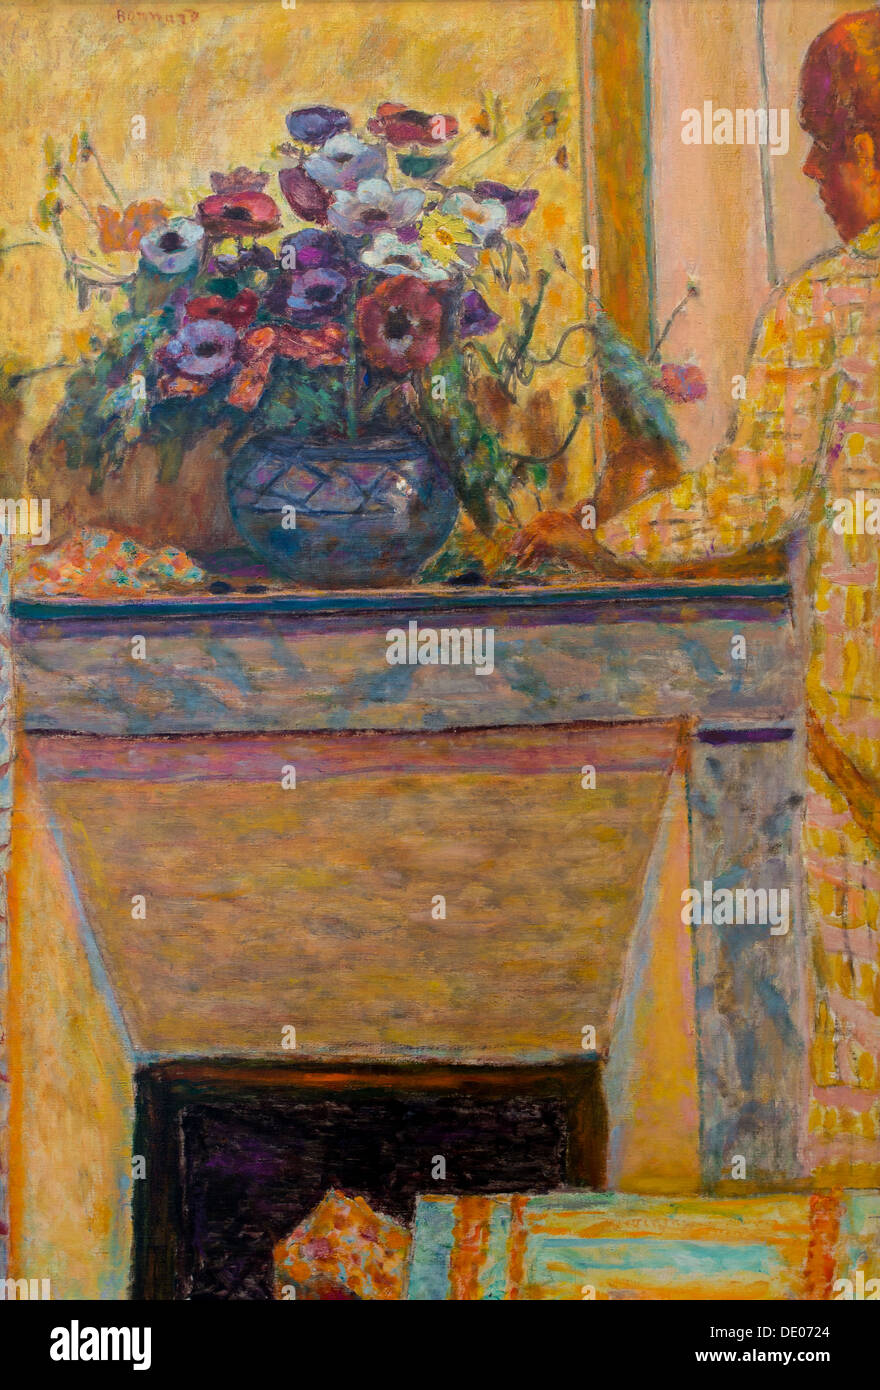 20th century  -  Flowers on a fireplace Cannet, 1927 - Pierre Bonnard Philippe Sauvan-Magnet / Active Museum oil on canvas - Stock Image